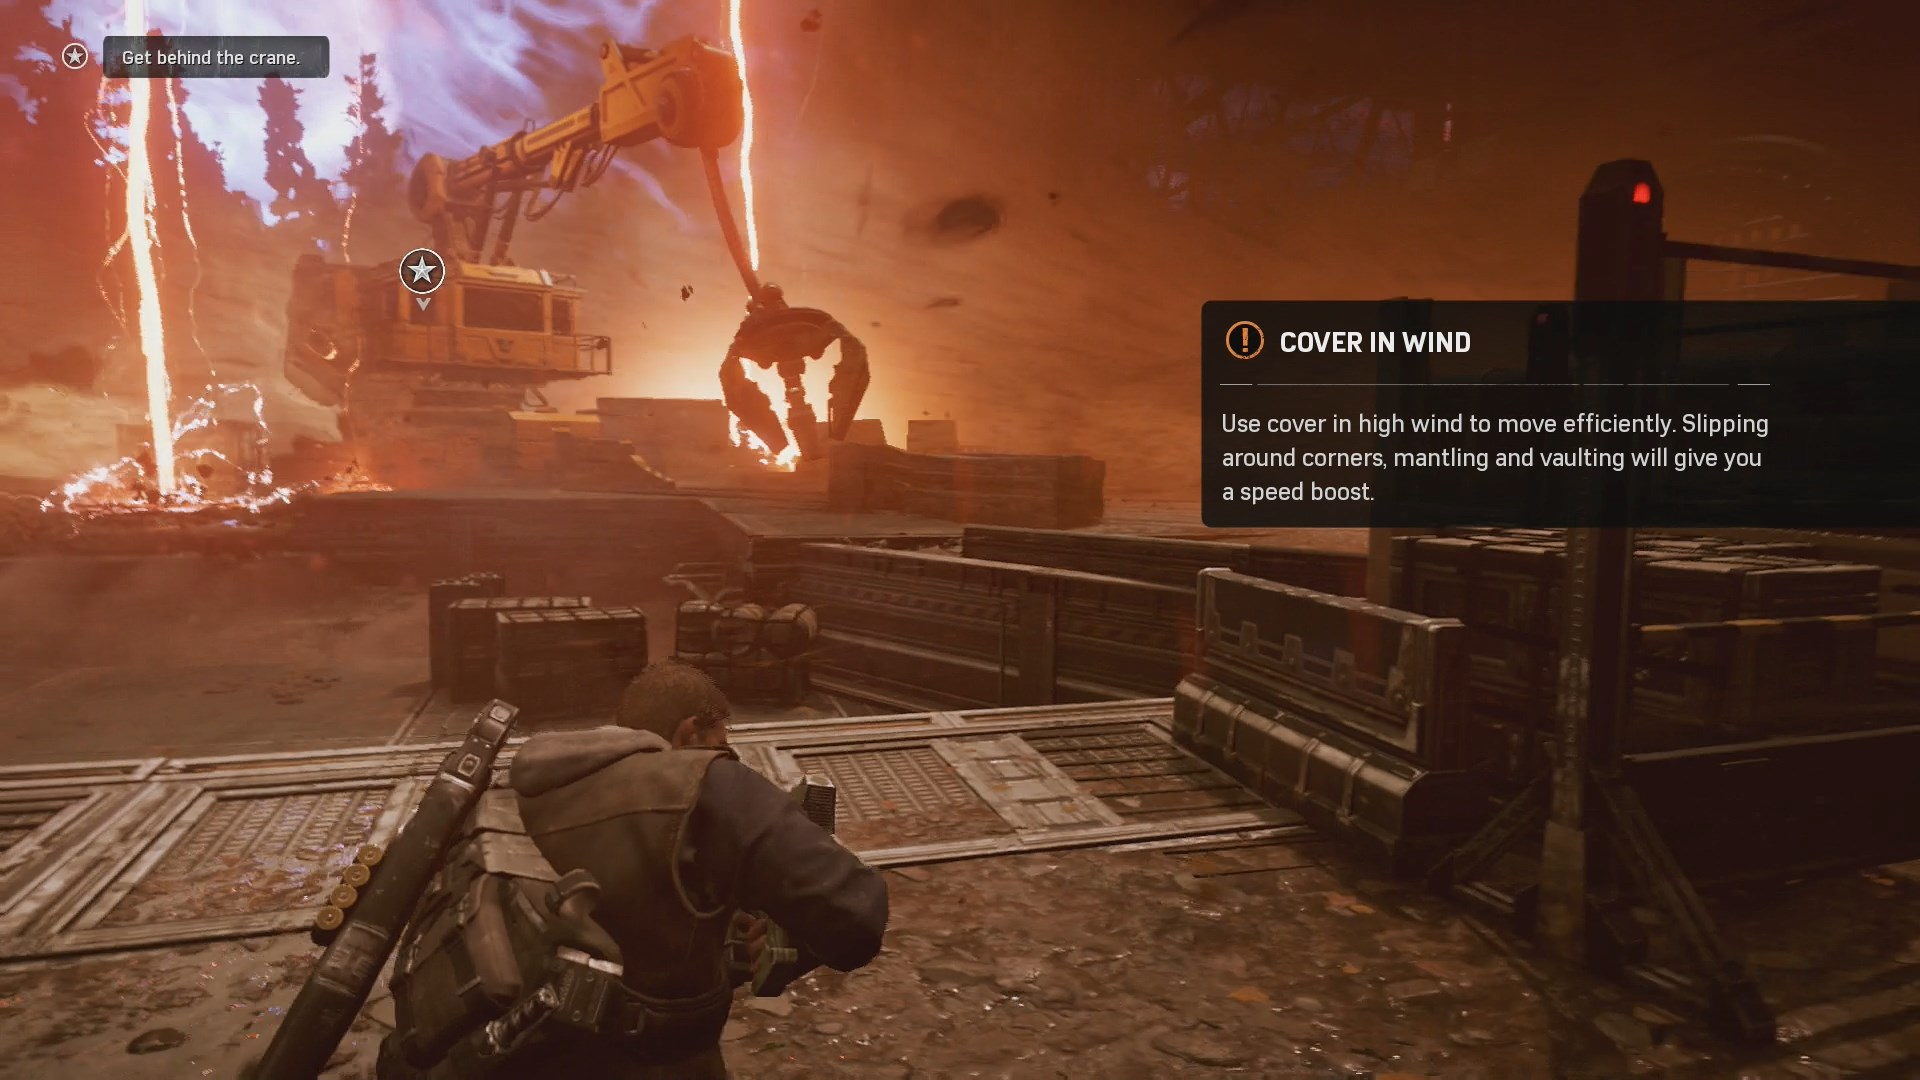 Gears of War 4 Act I Collectibles Locations Guide - Video